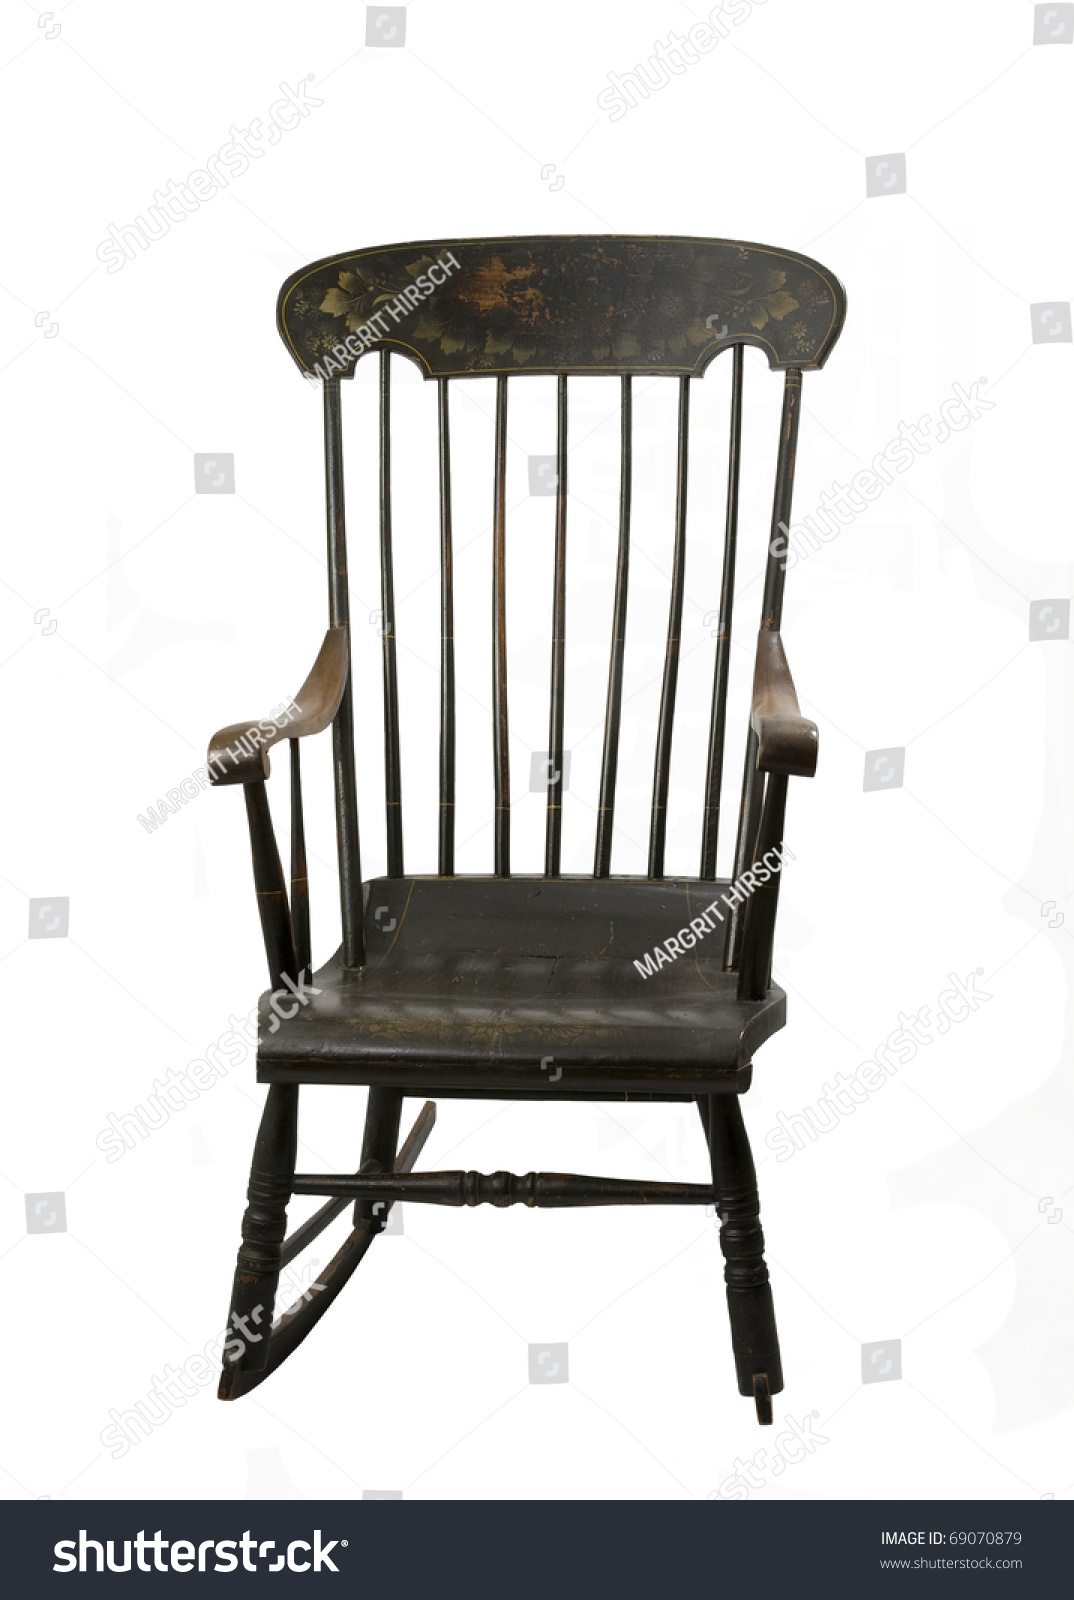 Beautiful Rocking Chairs Beautiful Antique Rocking Chair On White Stock Photo